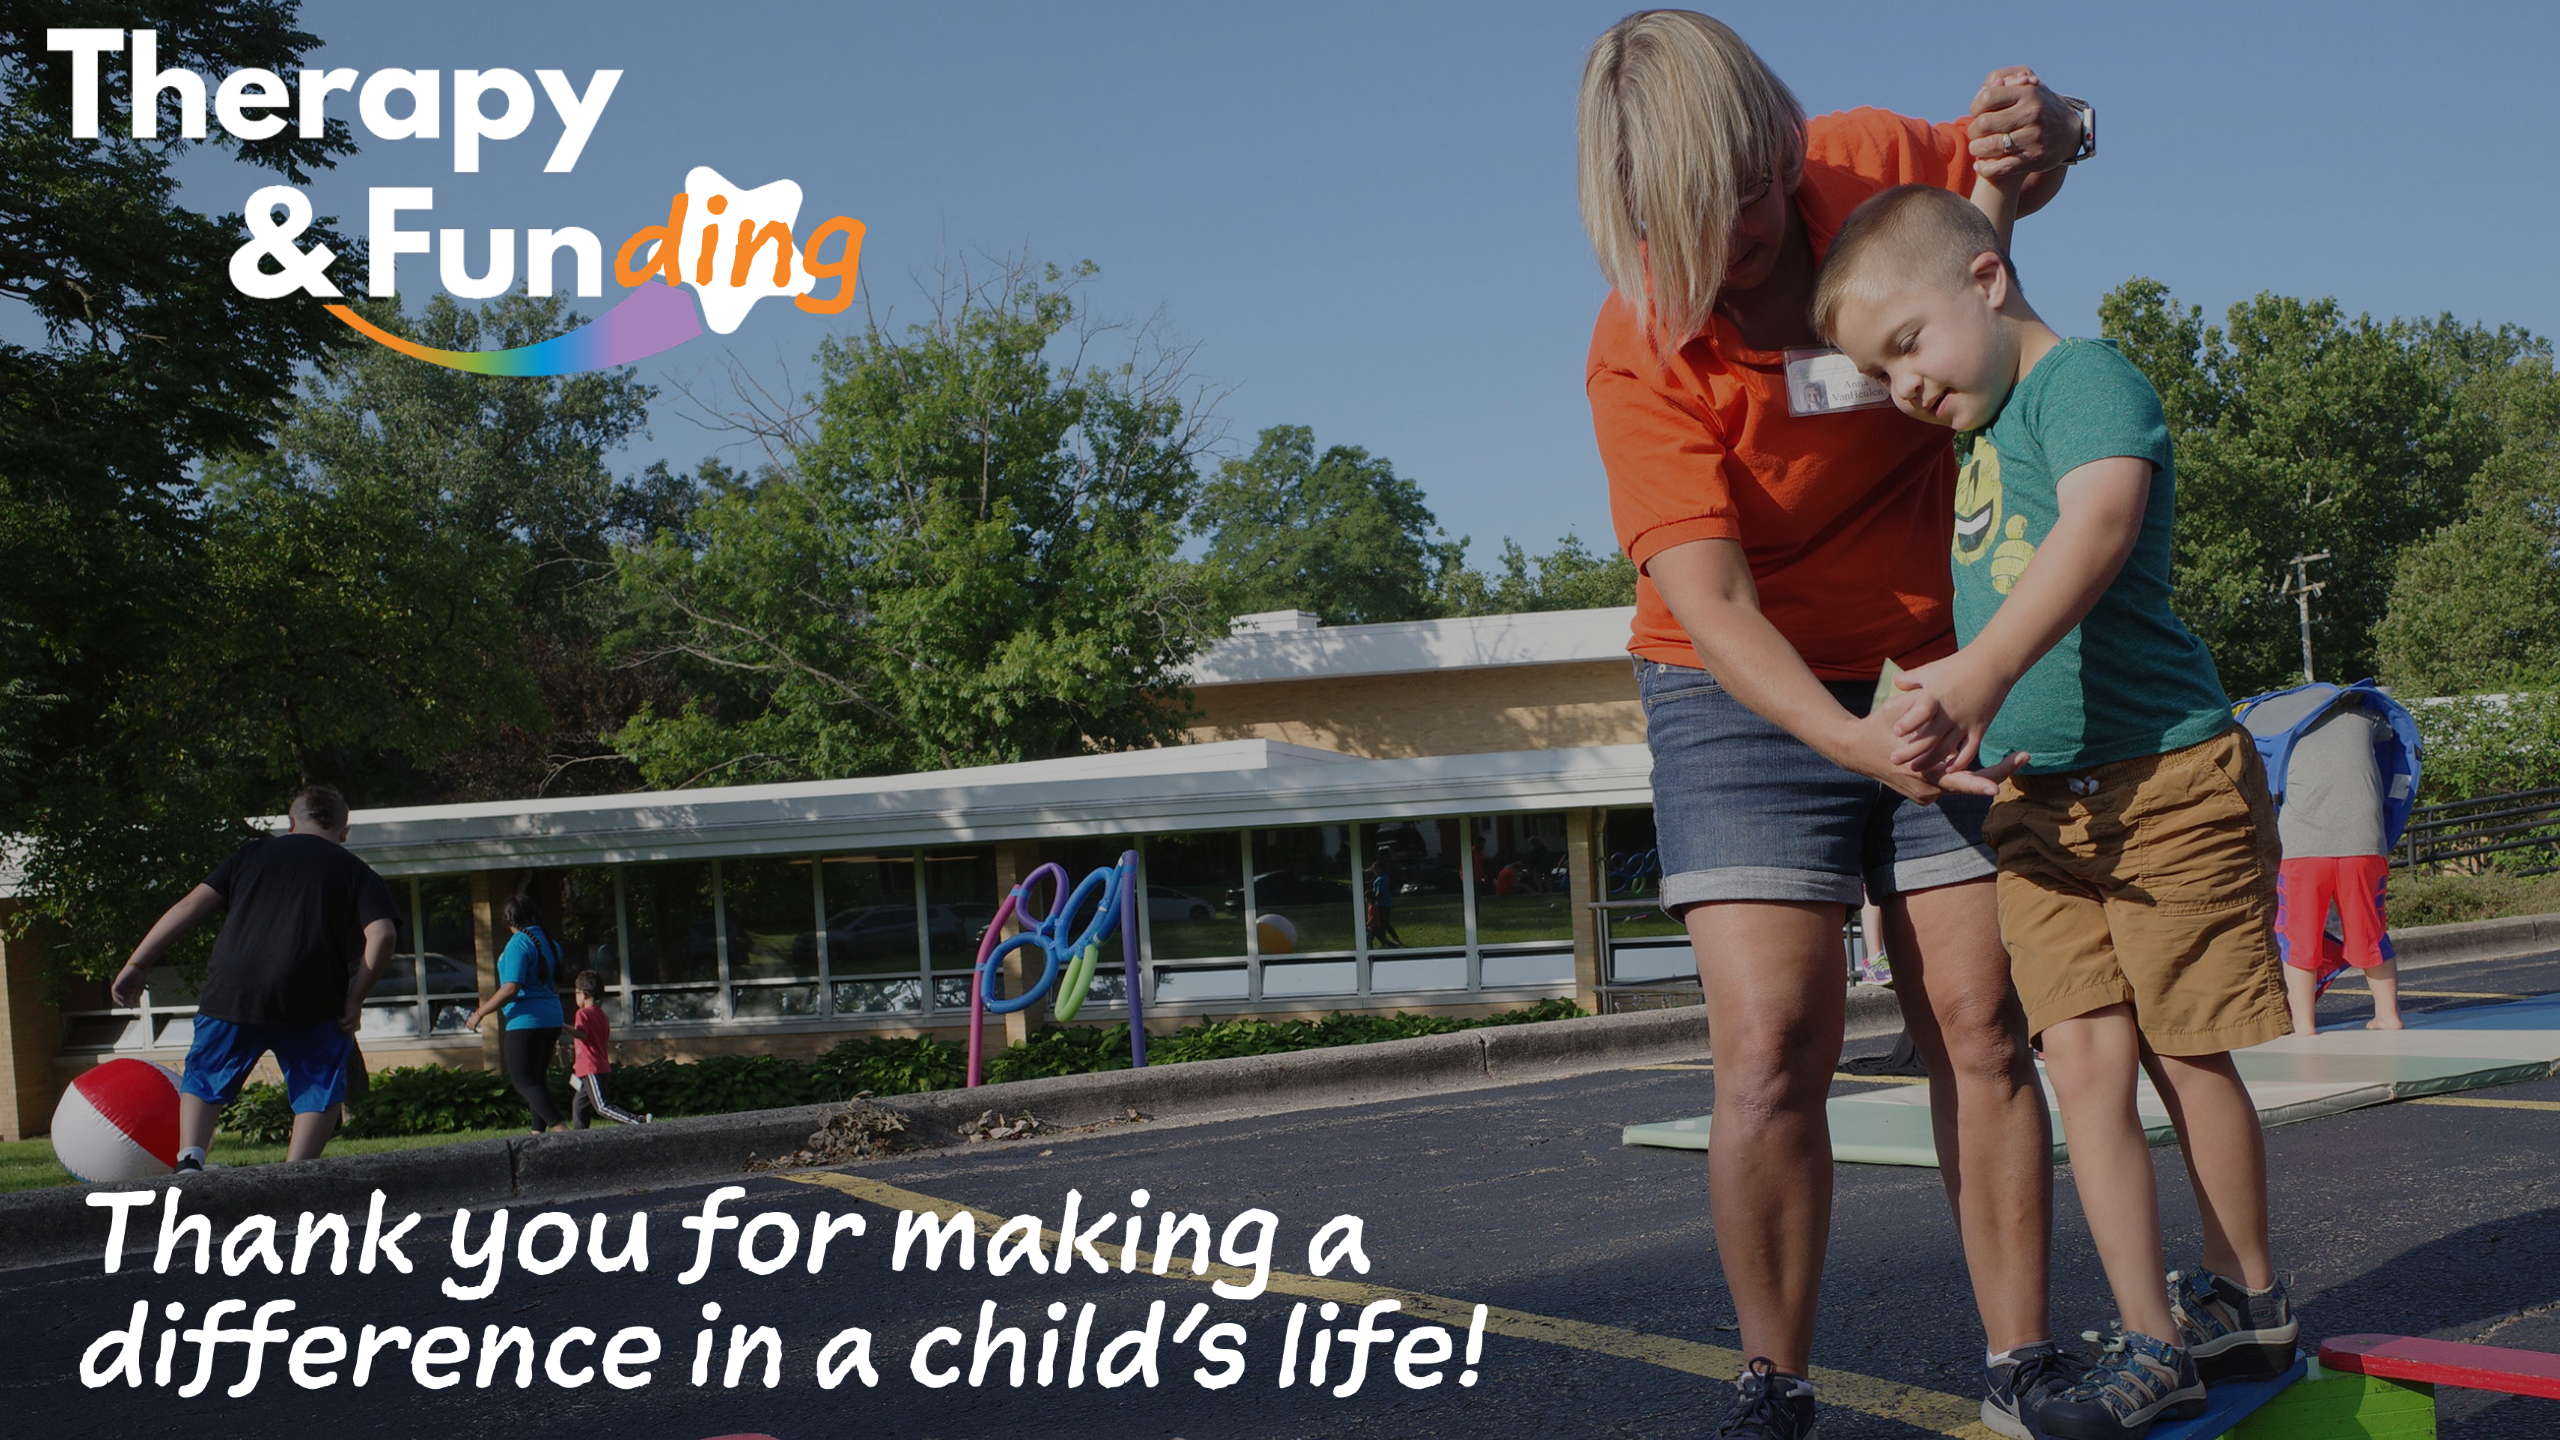 Thank you for making a difference in a child's life!